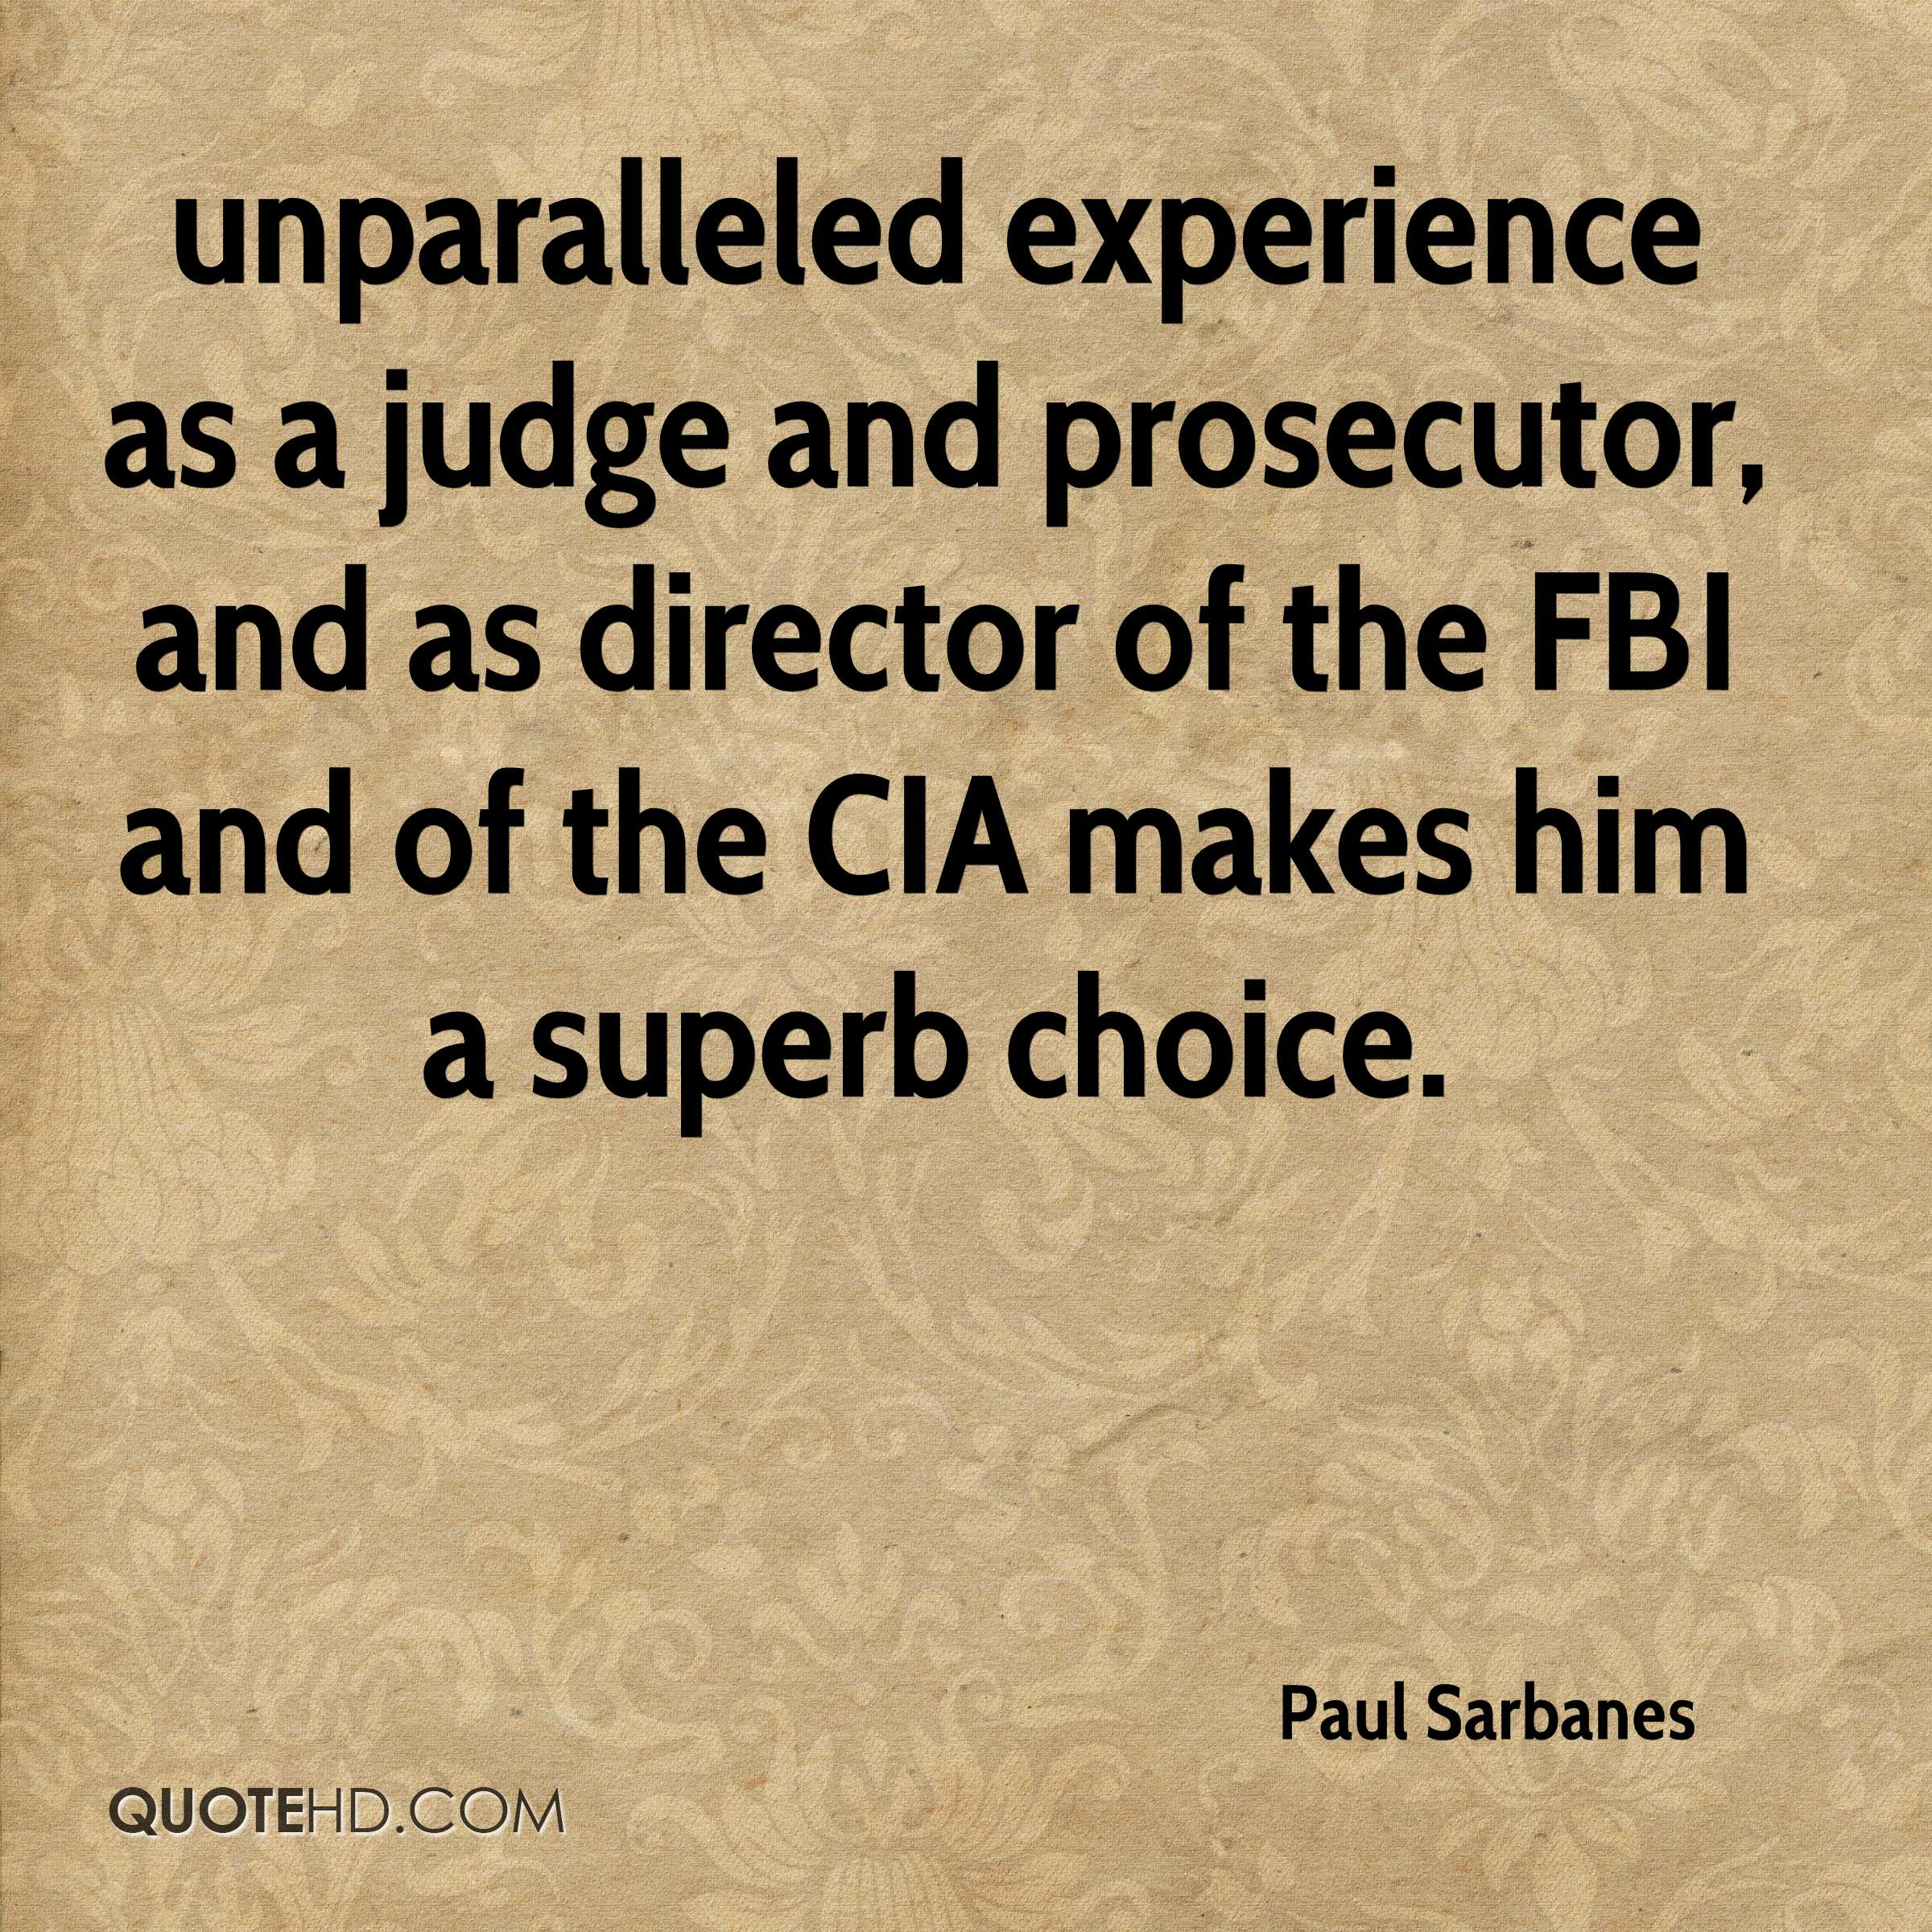 unparalleled experience as a judge and prosecutor, and as director of the FBI and of the CIA makes him a superb choice.